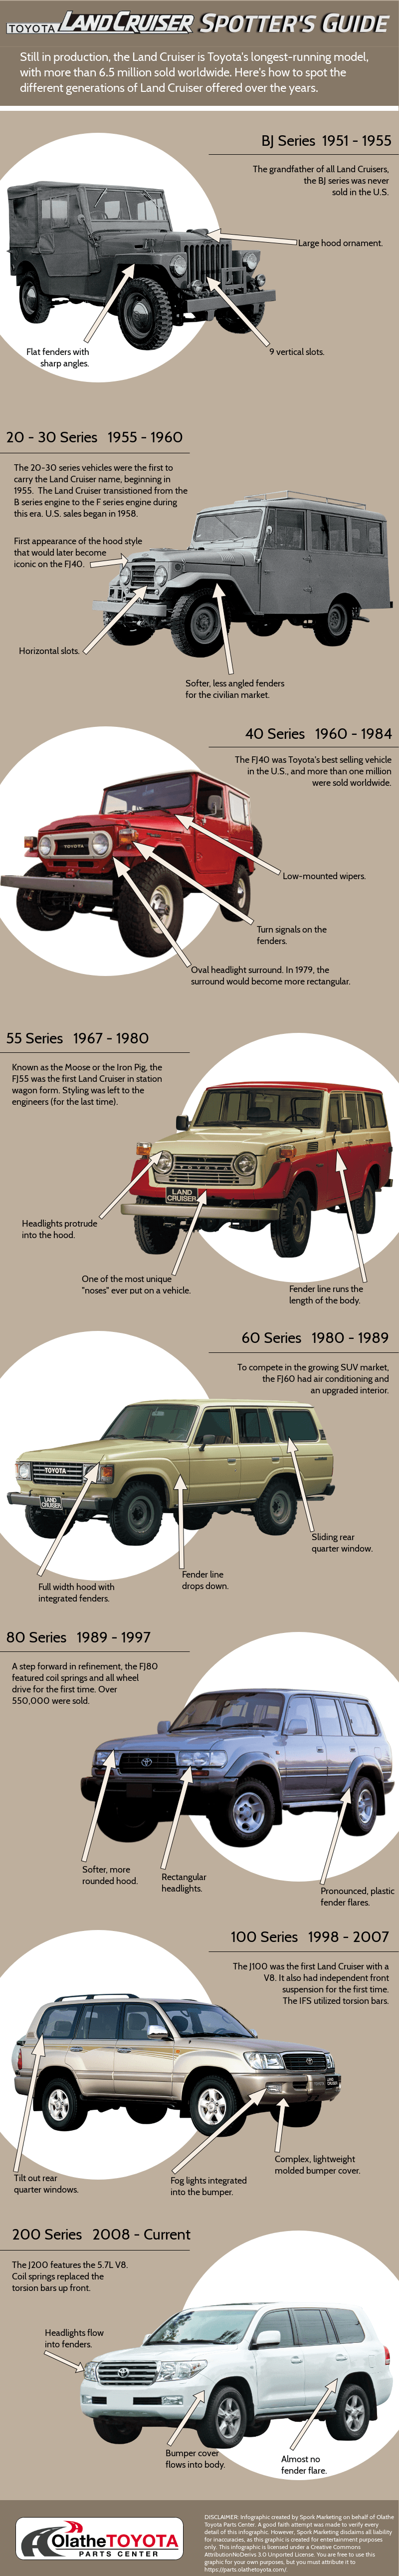 Land Cruiser IG